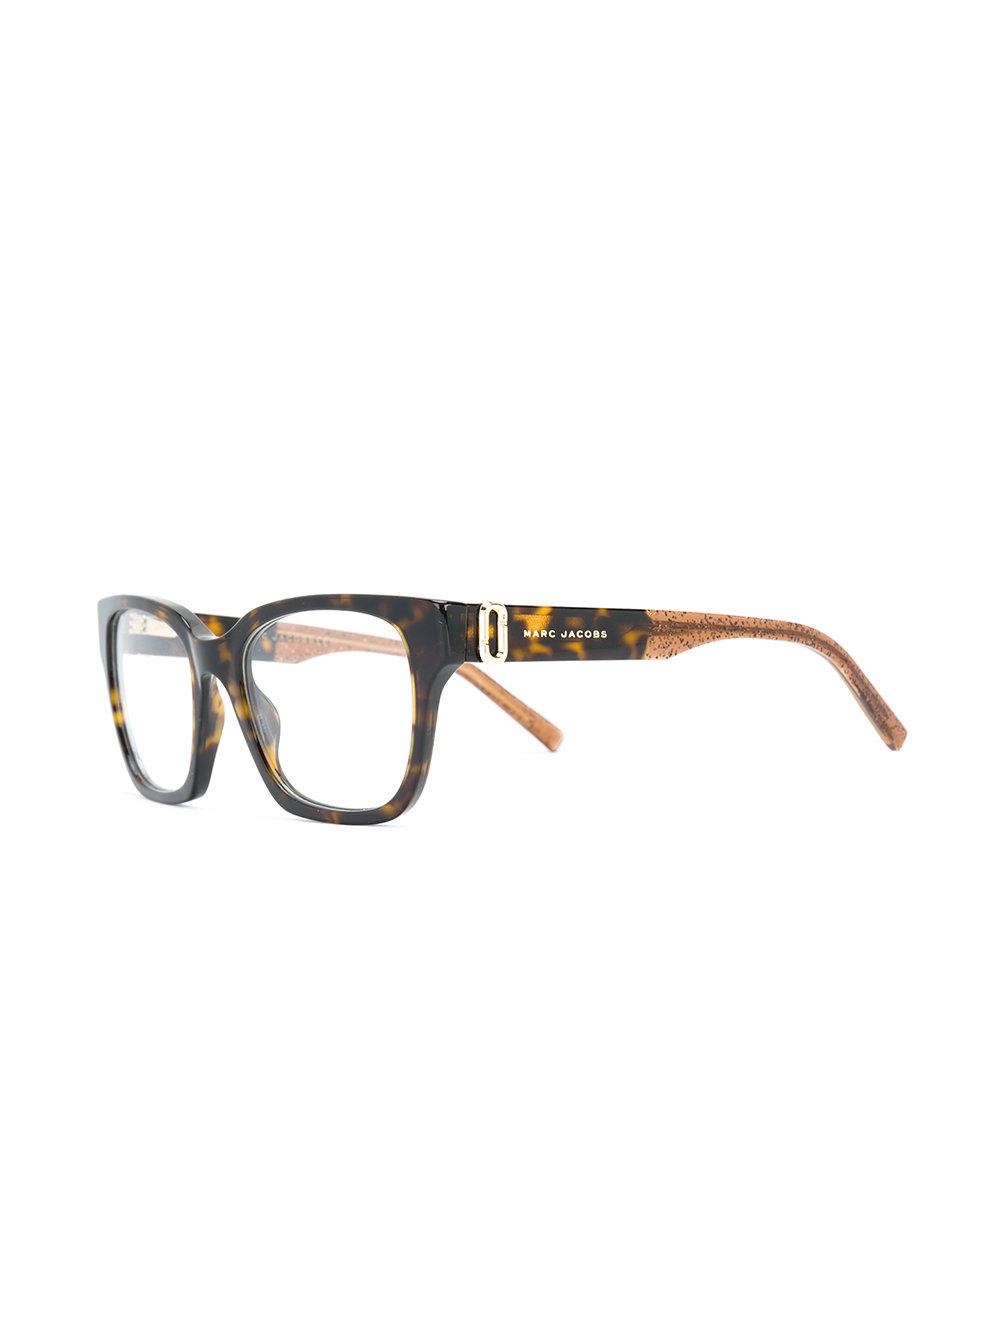 dd42945141 Lyst - Marc Jacobs Tortoiseshell Square Glasses in Brown